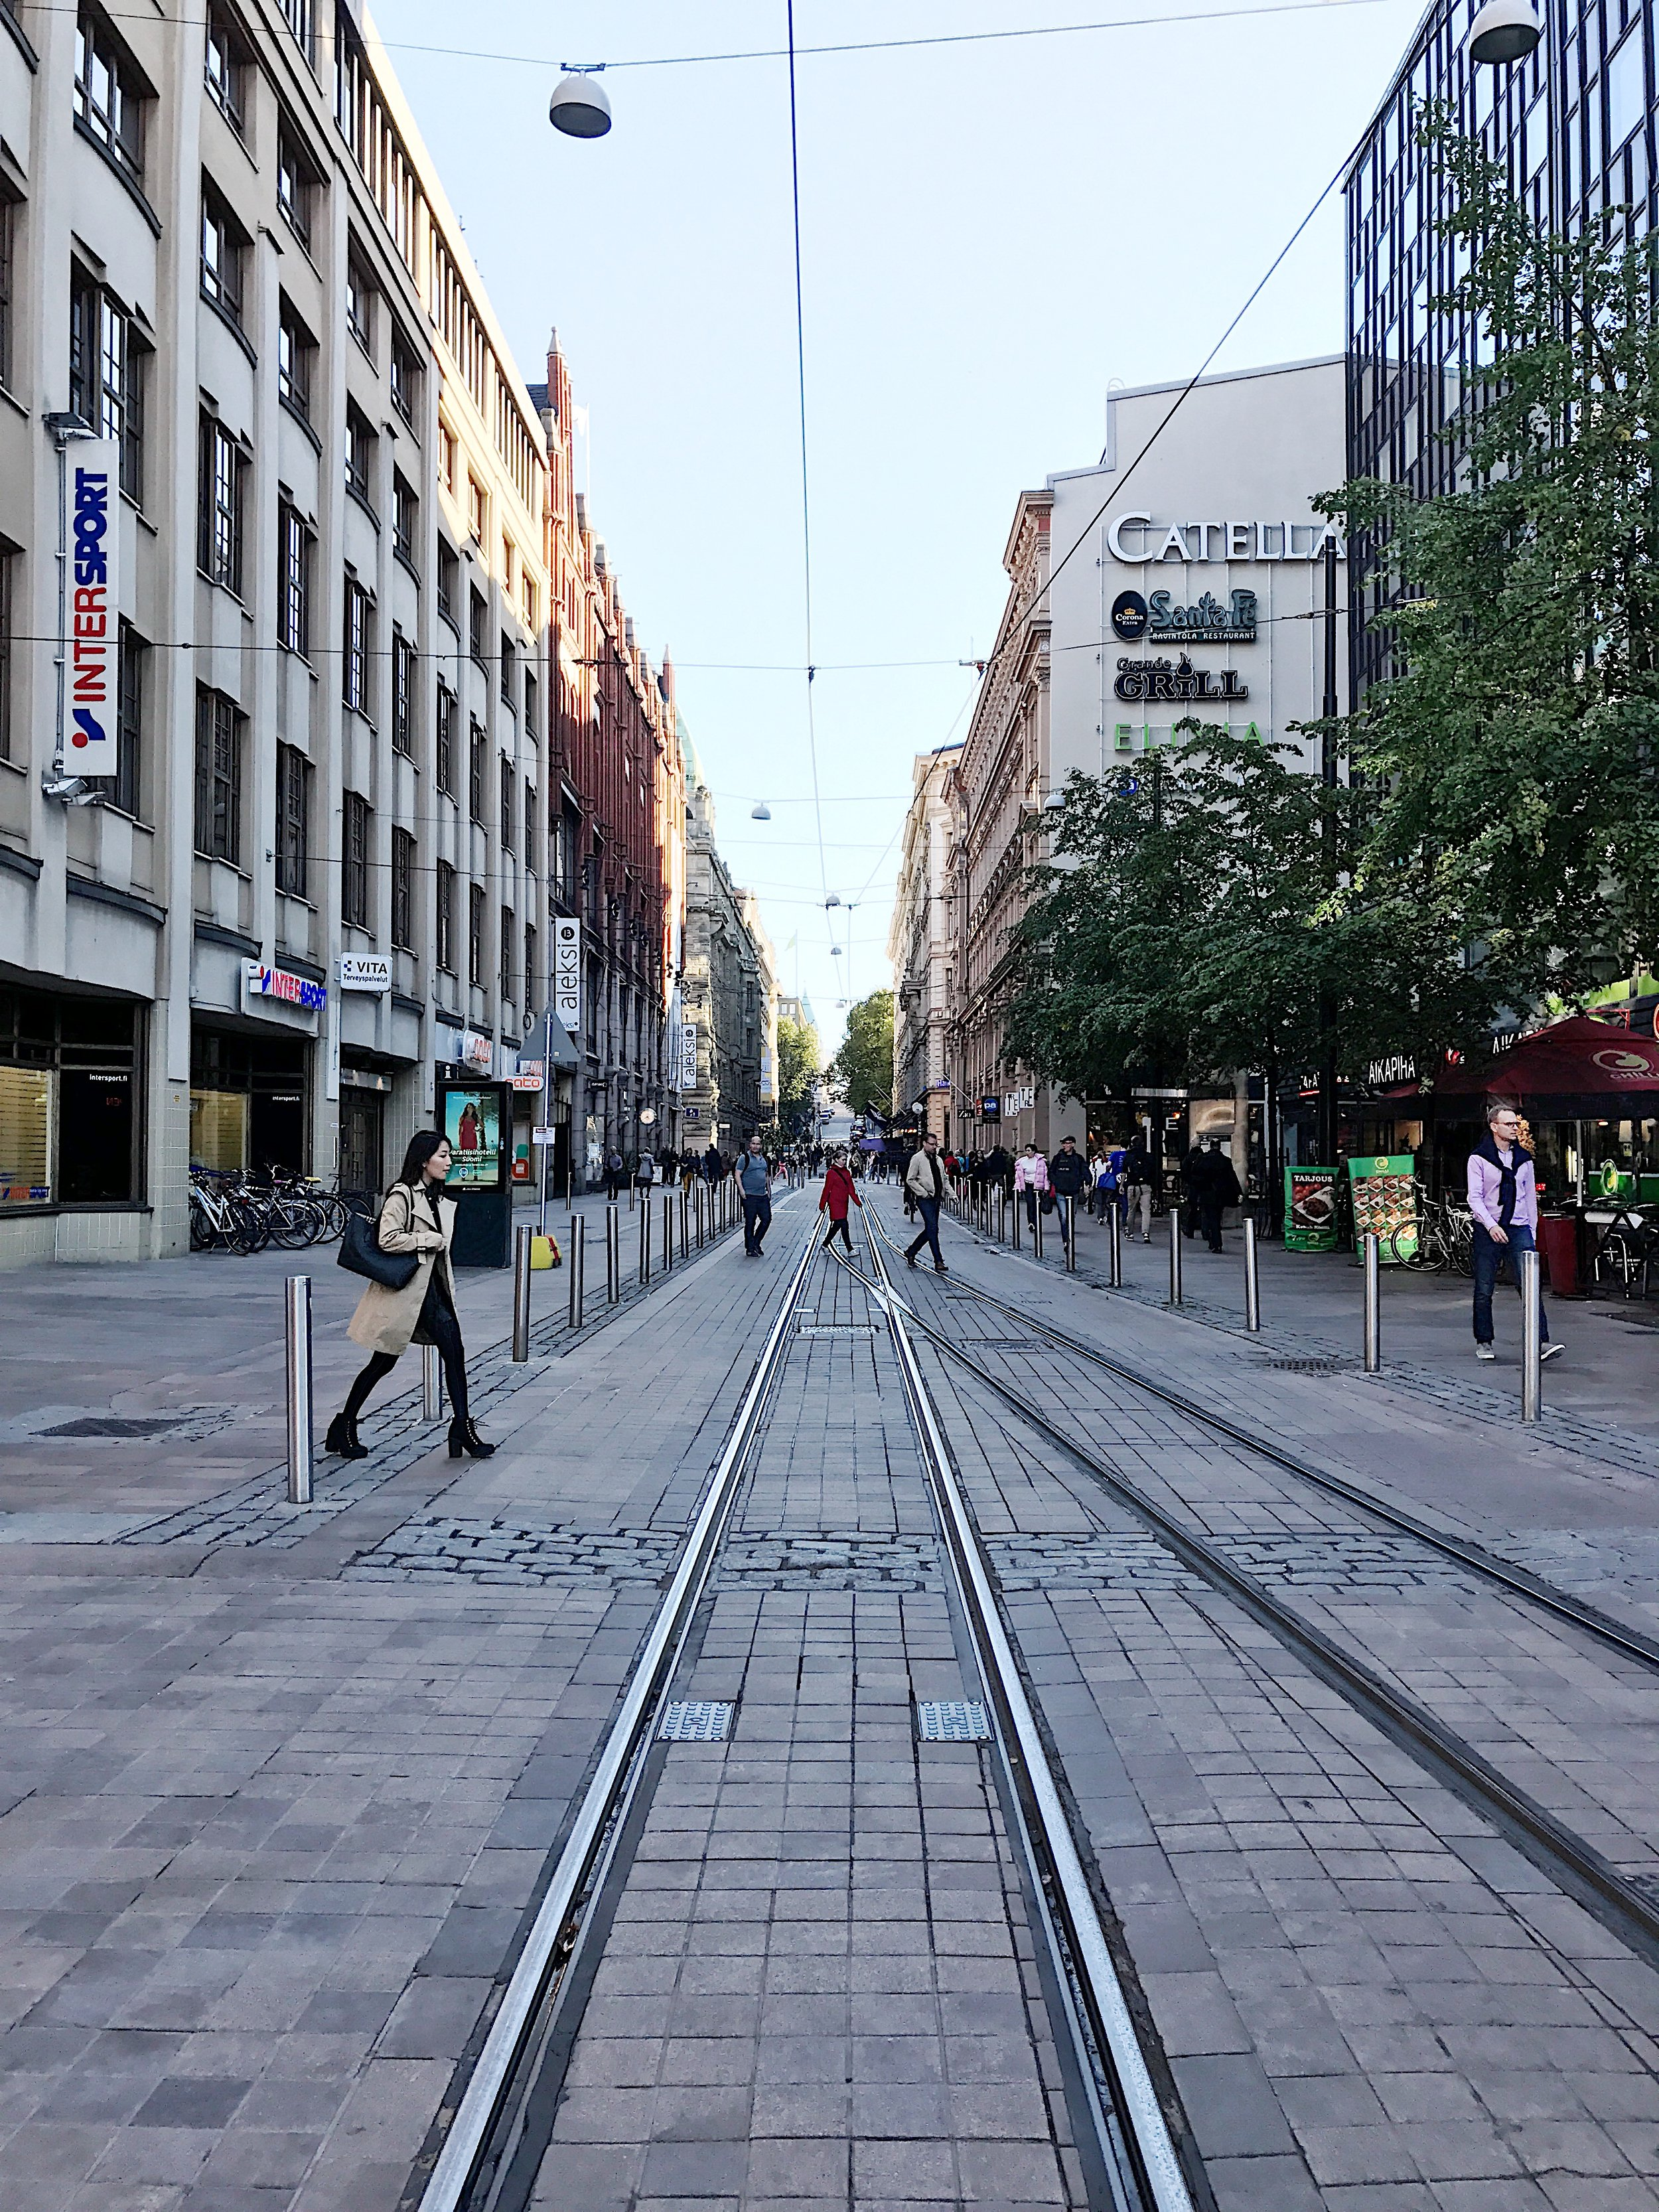 The tram runs everywhere in the city.